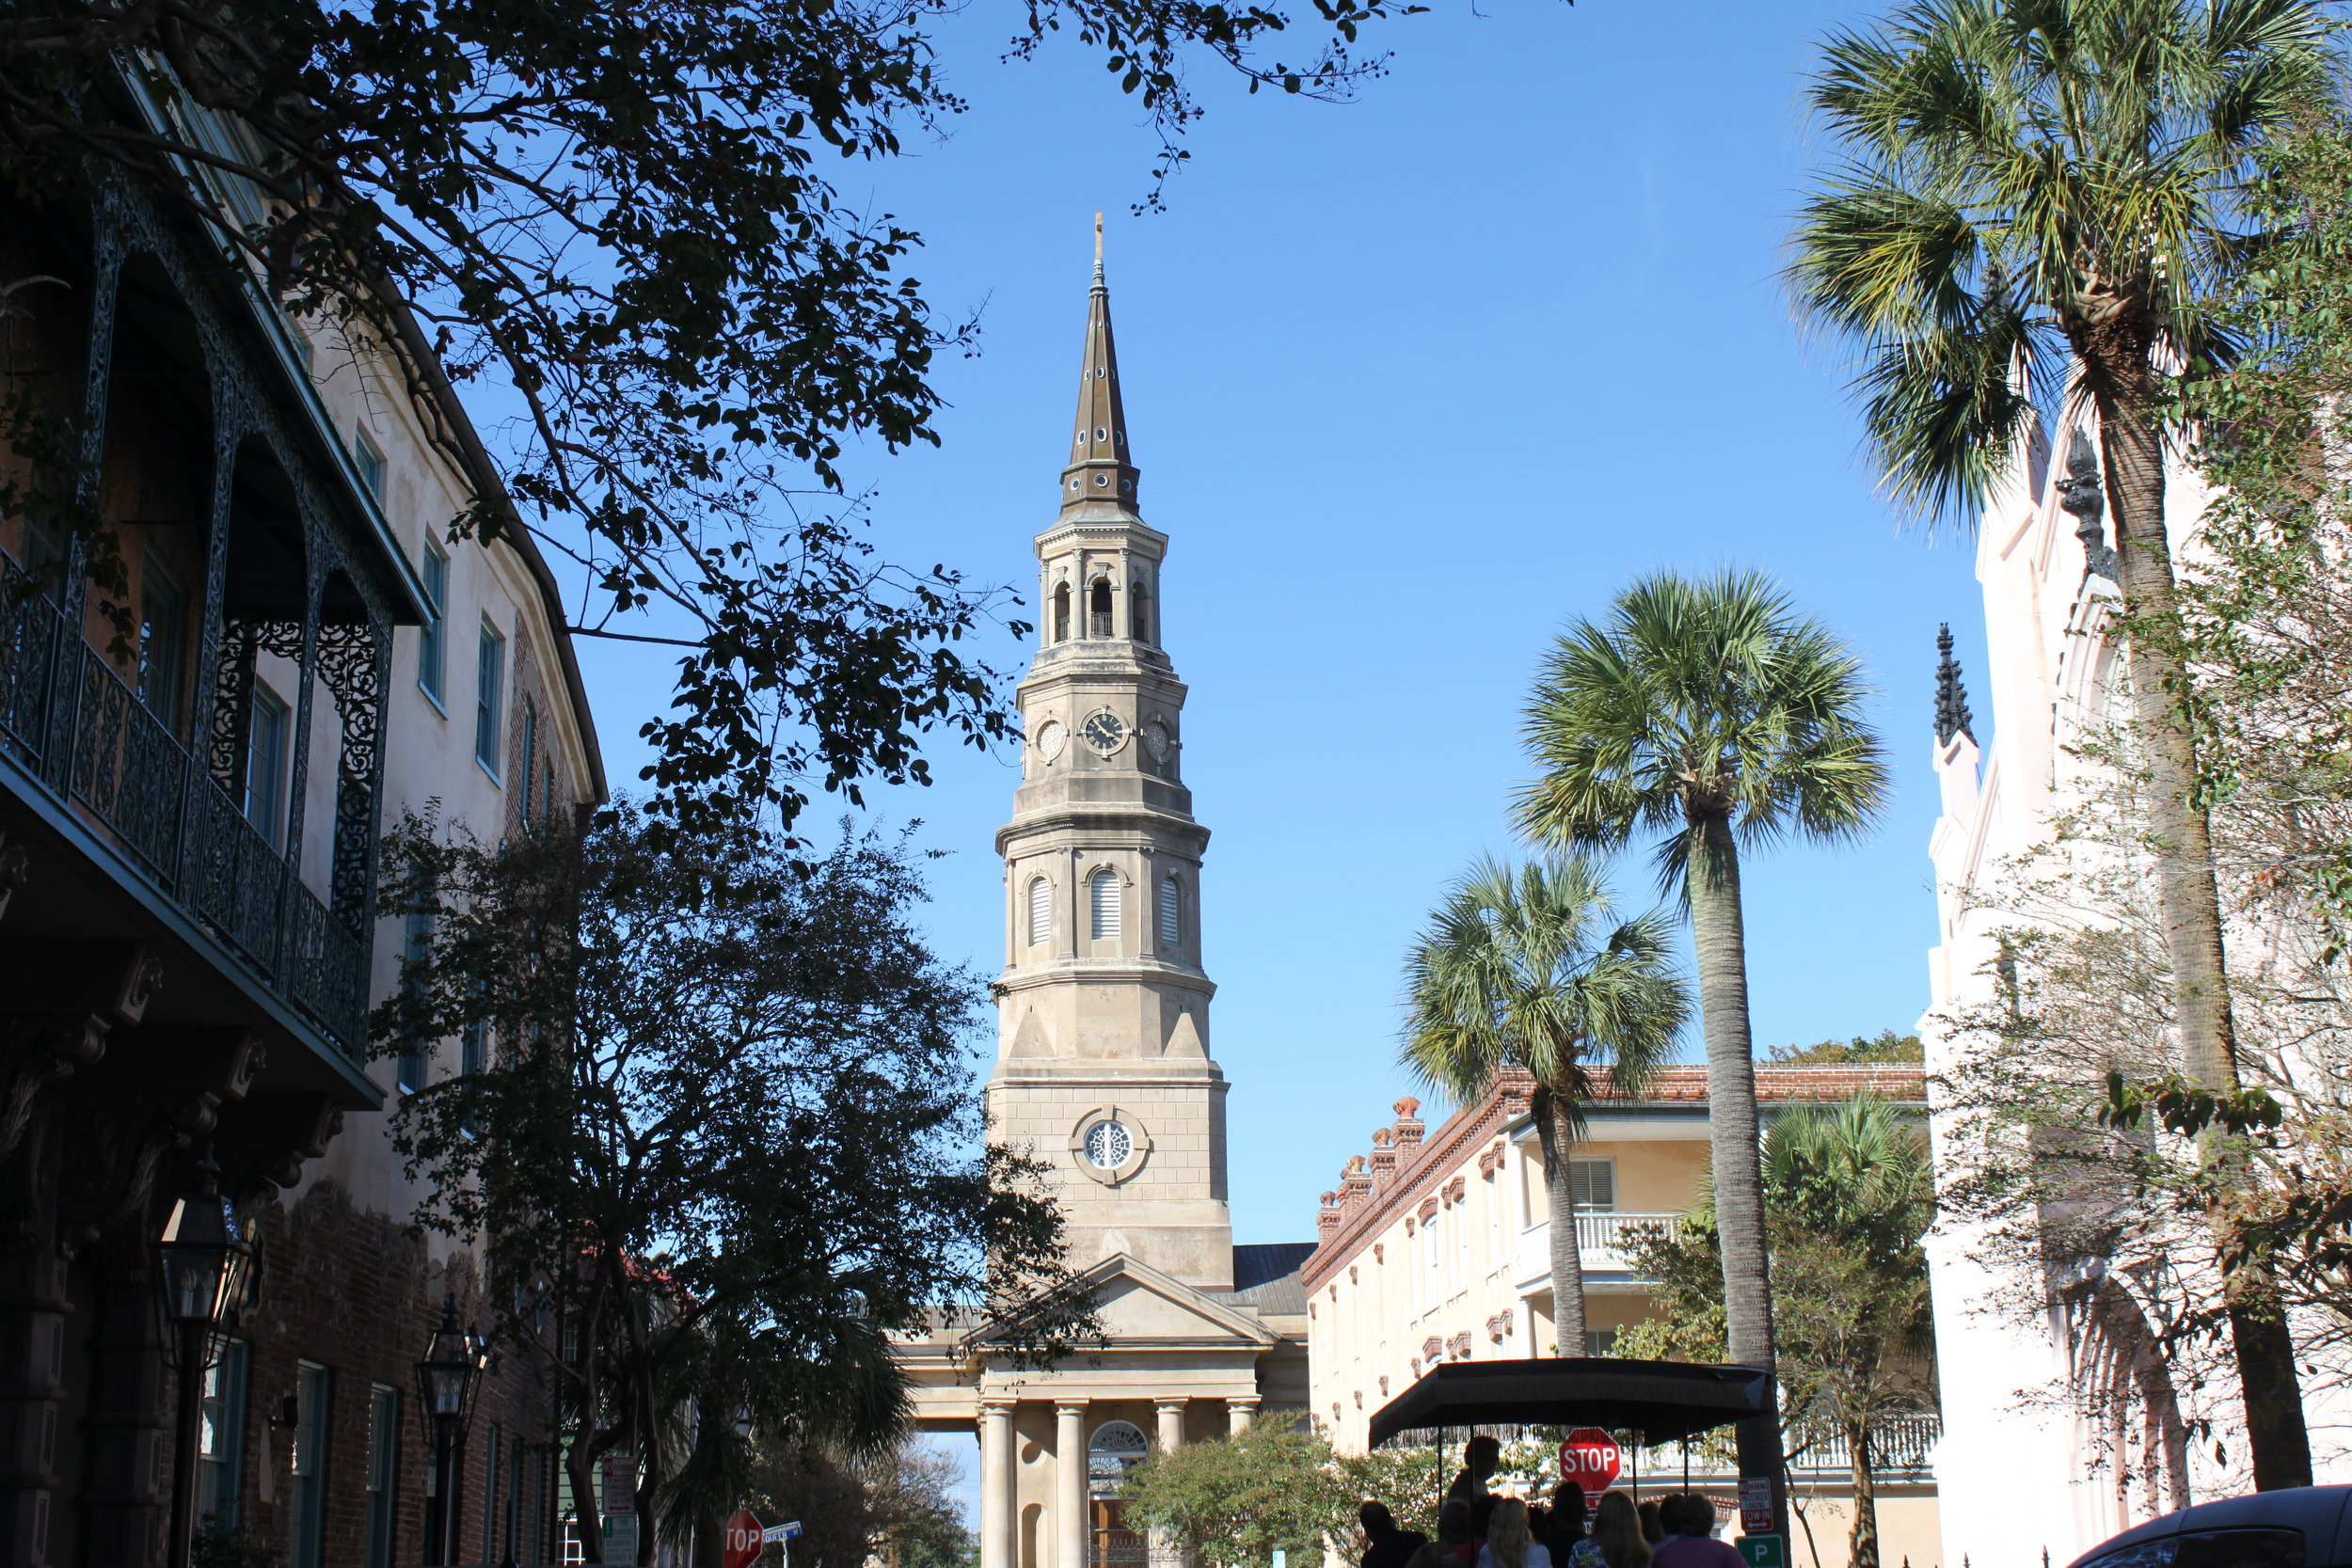 I am thrilled to announce that Charleston, South Carolina has been voted #1 small city destination in the U.S in the 2016  Conde  Nast Traveler Readers' Choice Awards.   This is the sixth consecutive year that Charleston has been named a #1 city, and I extend a sincere thank you to everyone who voted! A record of 300,000 respondents voted in the annual Readers' Choice Awards. The Charleston area earned a combined score of 90.25 in the categories of  culture ,  friendliness ,  atmosphere ,  restaurants ,  lodging , and  shopping .